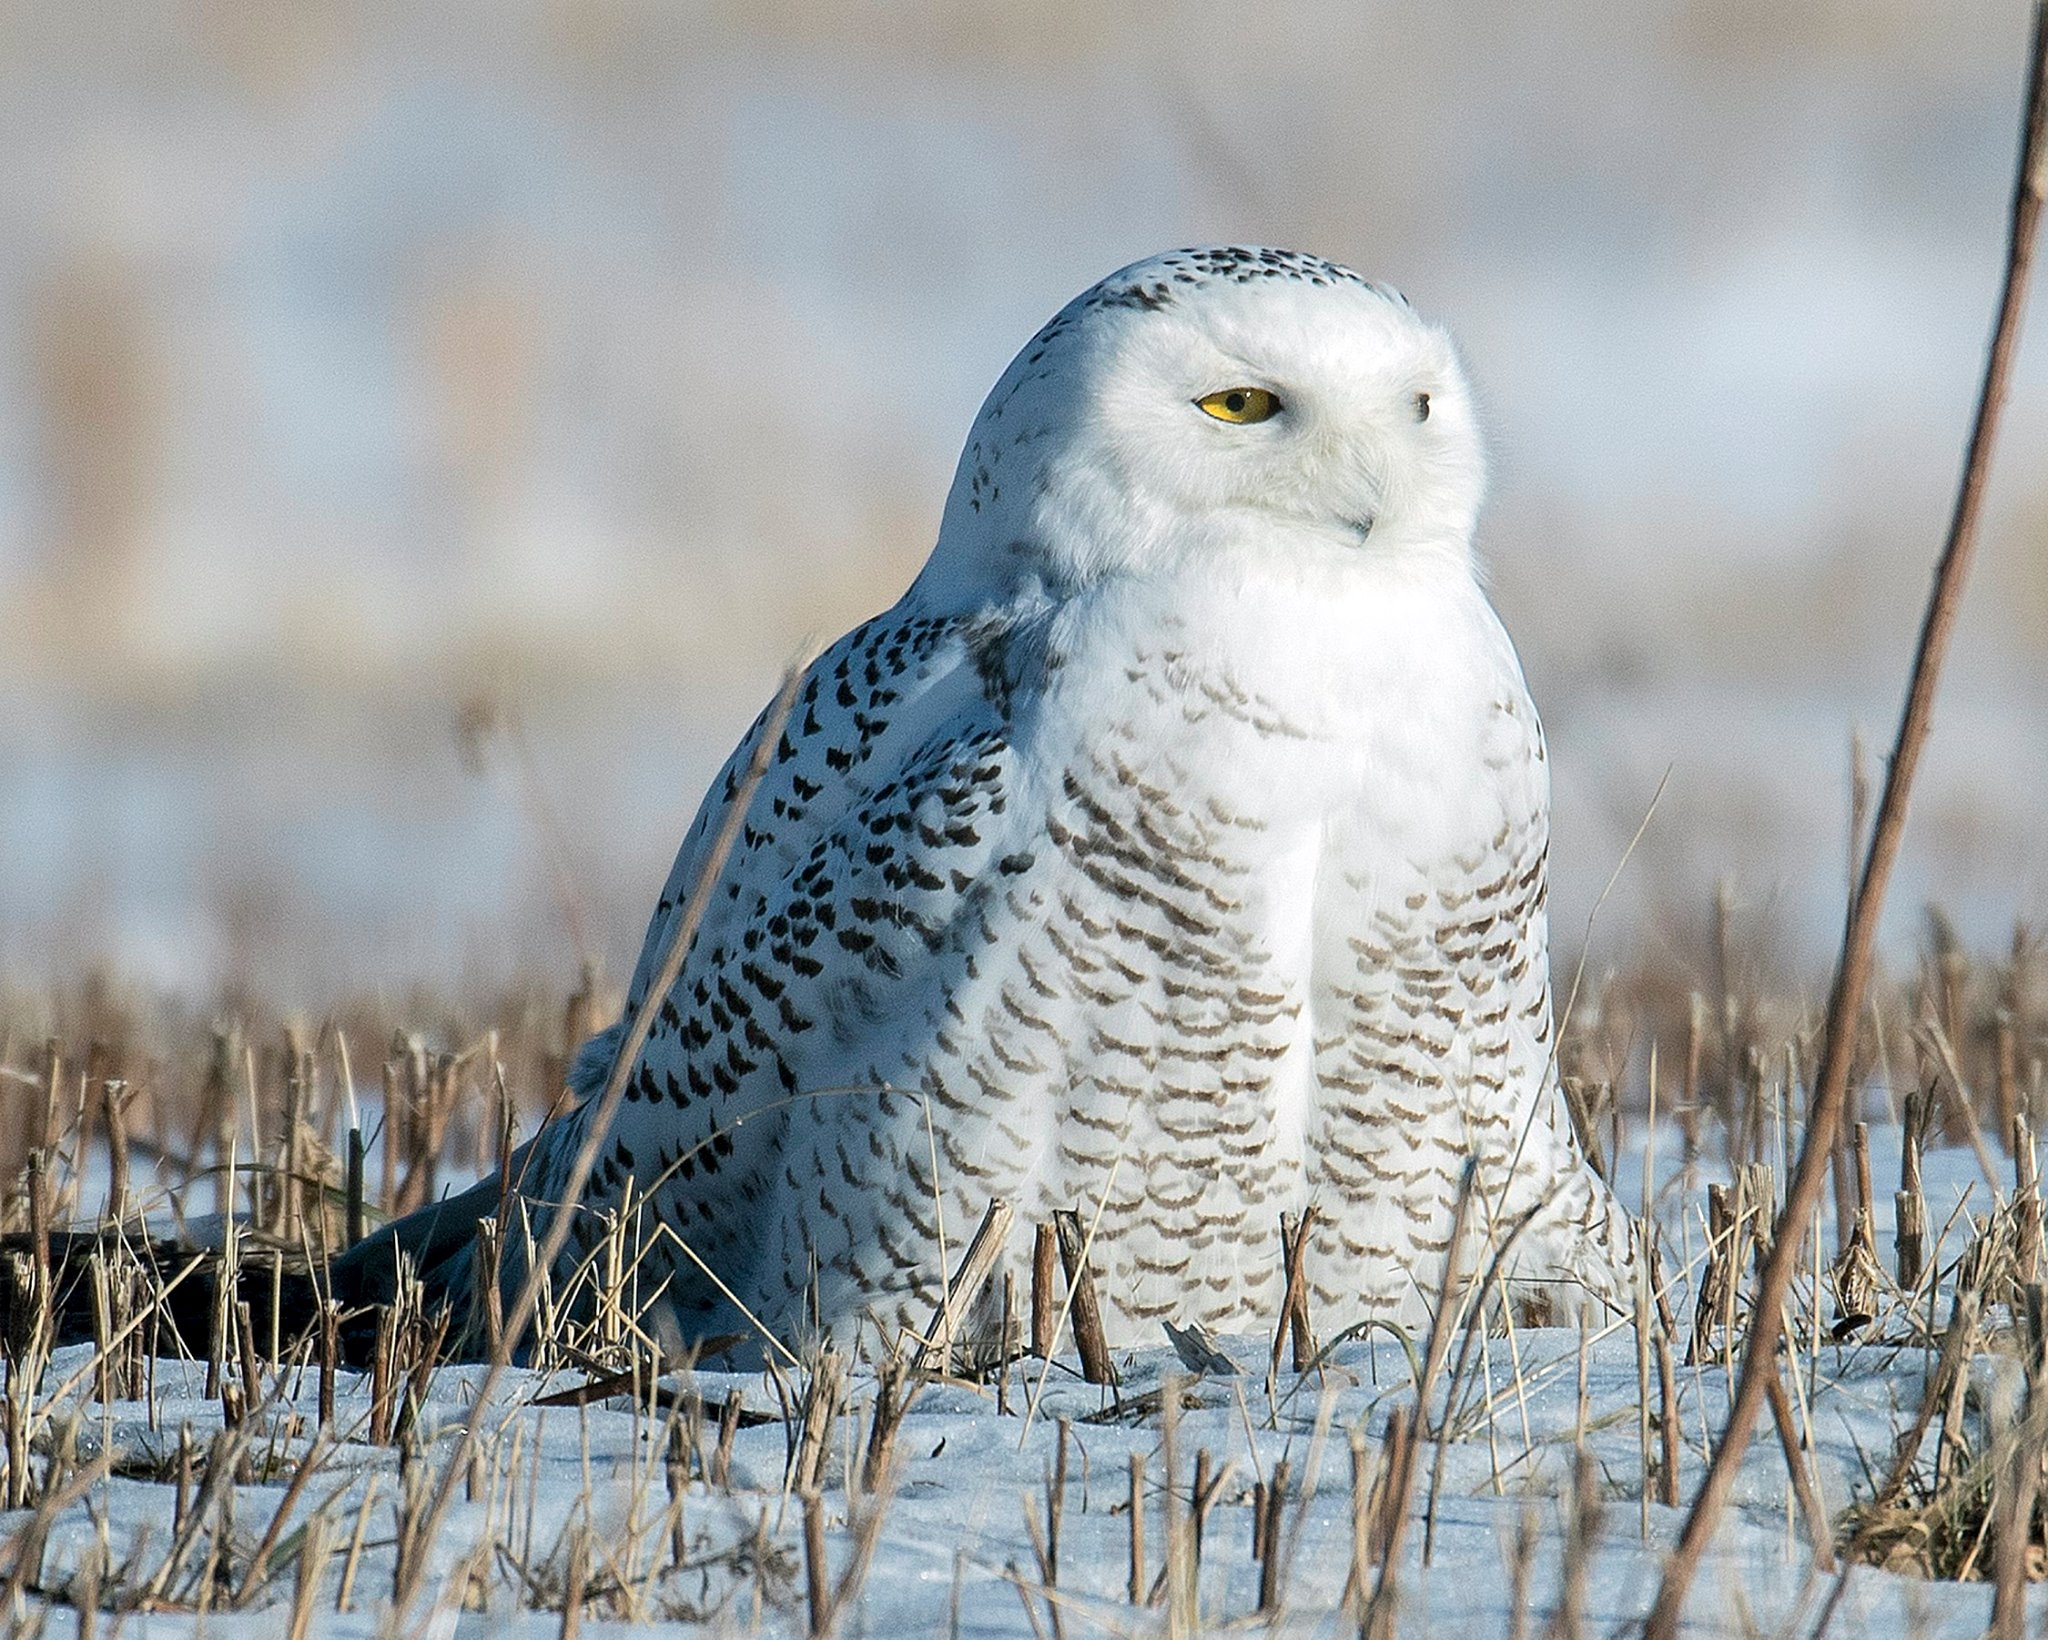 Are you Willing to Kill for a Better Snowy Owl Photograph?